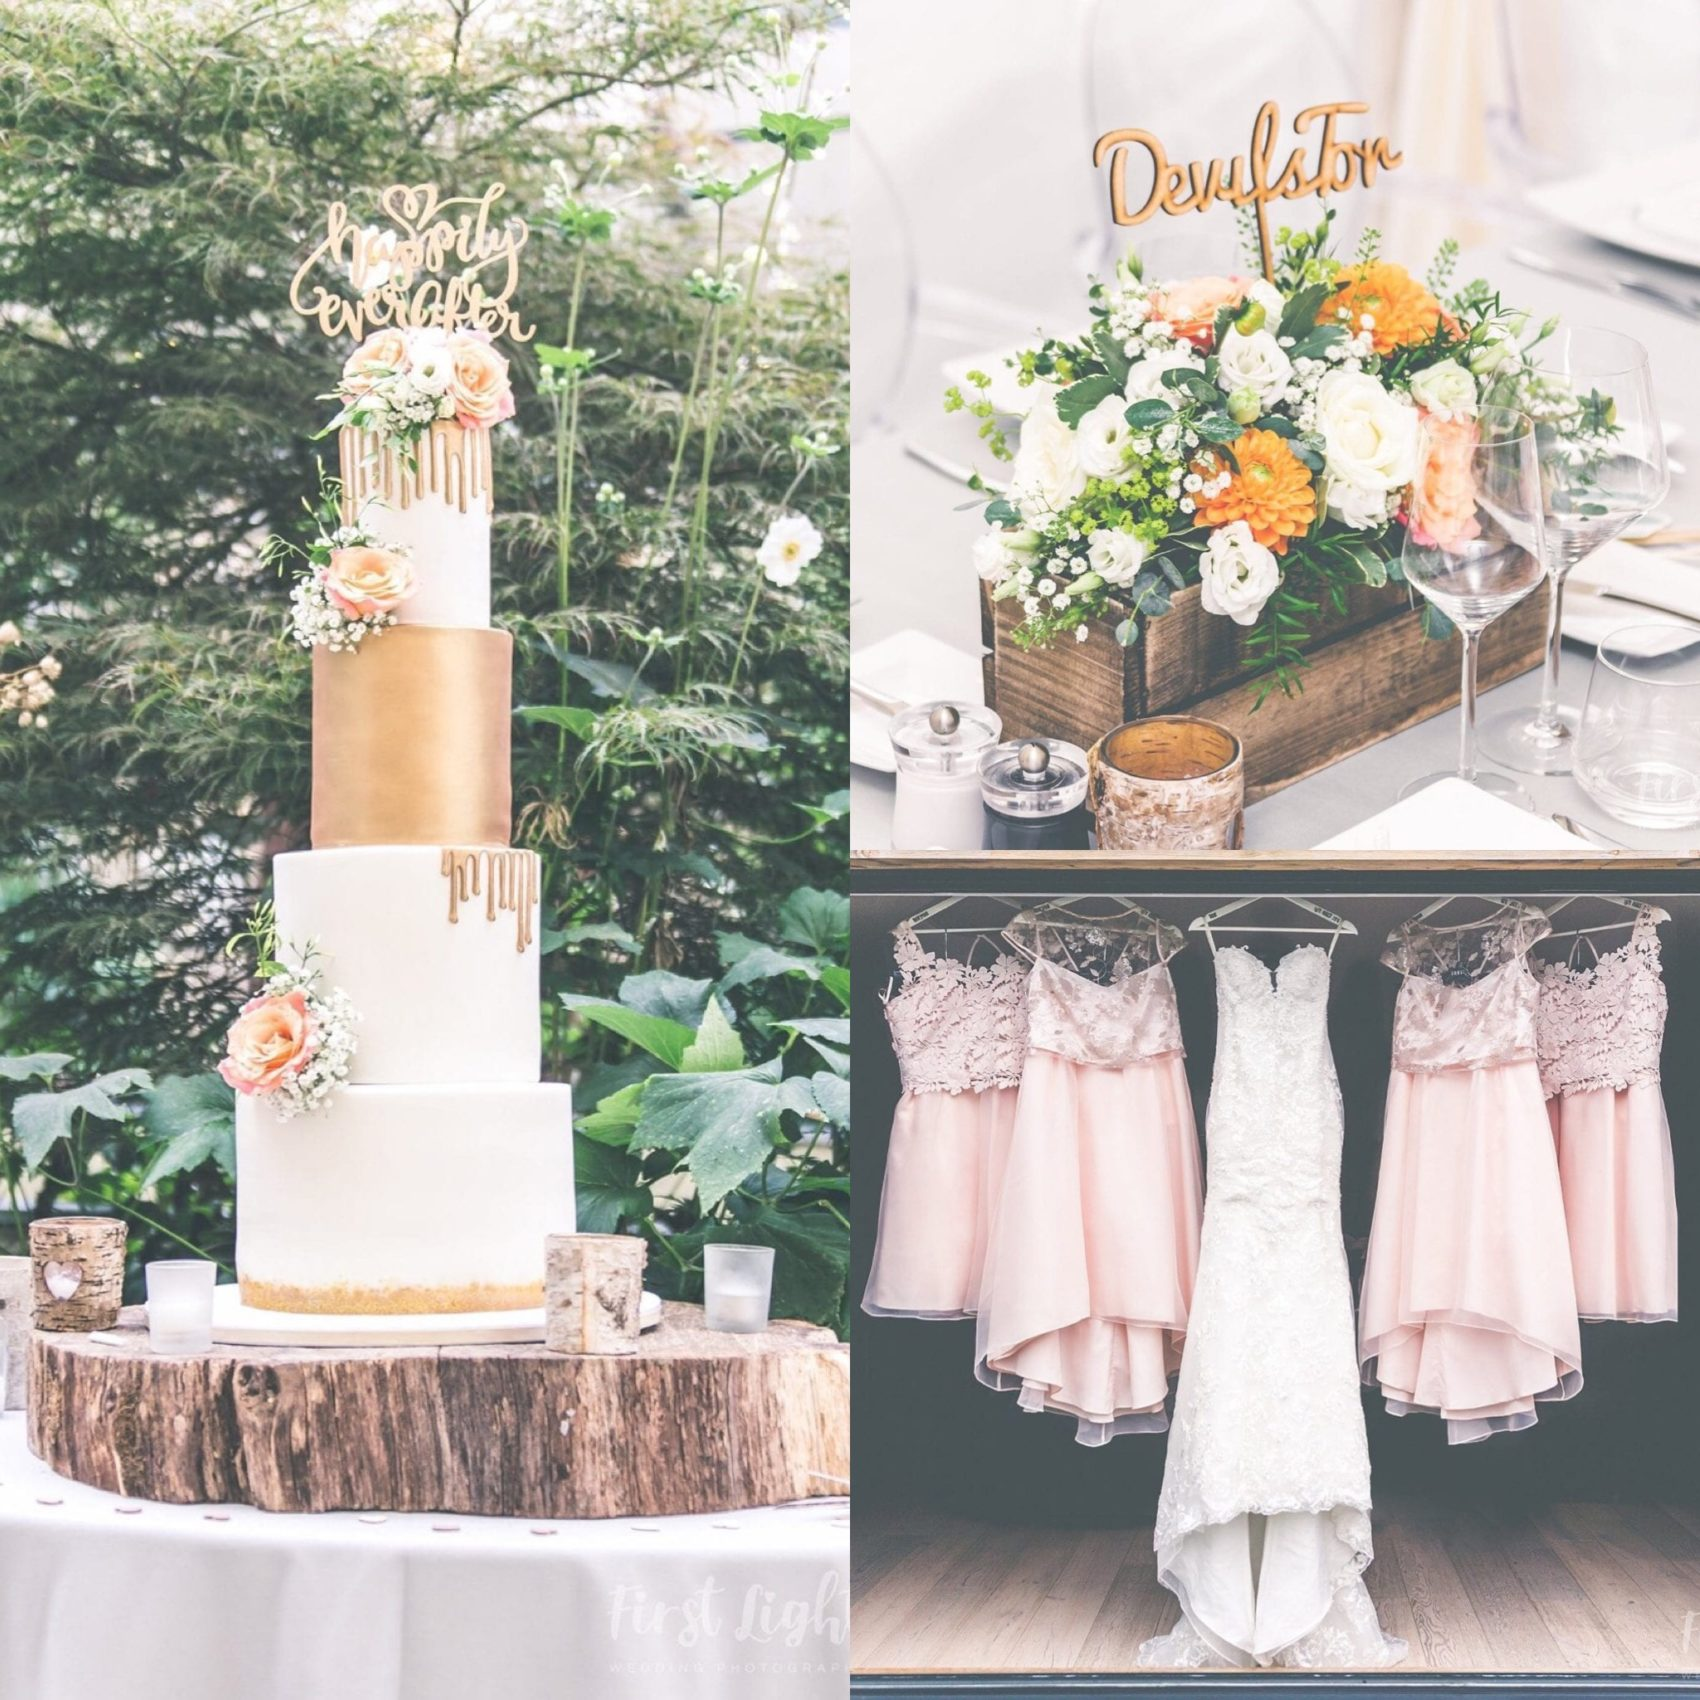 cake, dresses, flowers, details, close ups, bridesmaid, bride, wood, tiers, layers, gold, orange, pink, wedding, ever after, lower grenofen